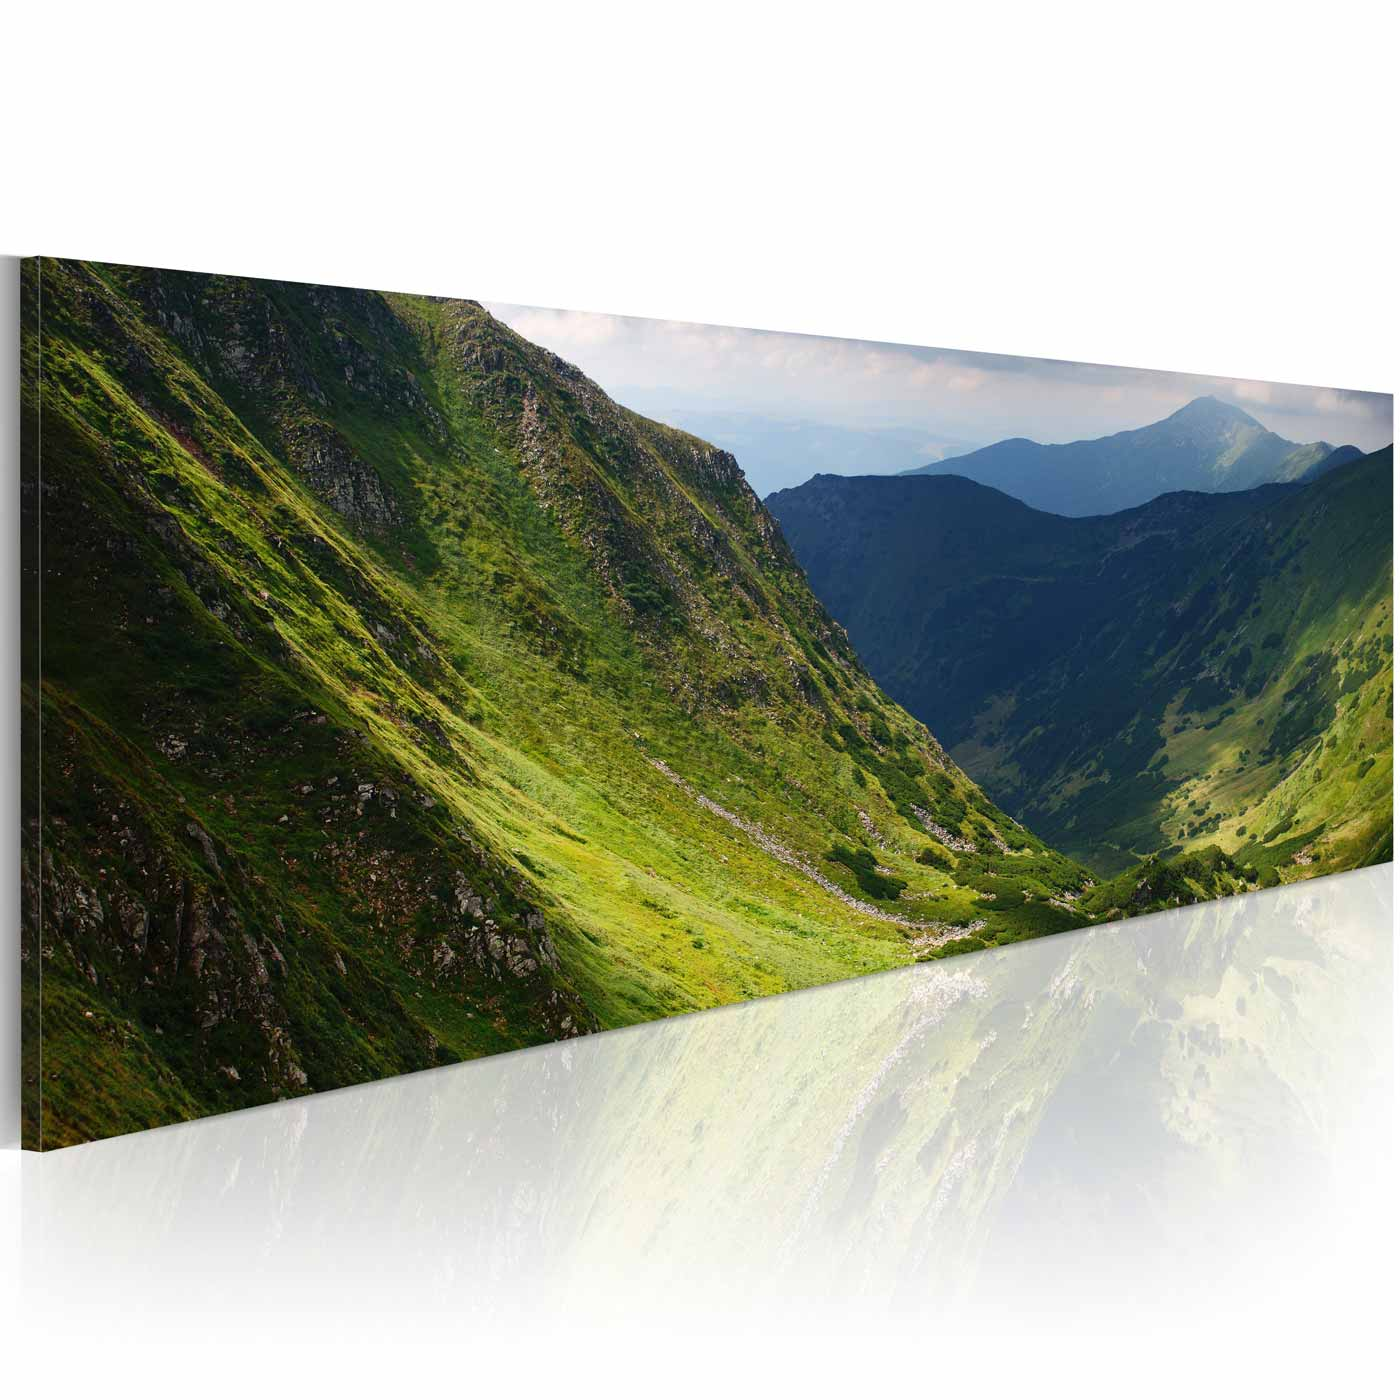 Artgeist in the valley of the mountain billede - multifarvet canvas print (40x120) fra artgeist på boboonline.dk